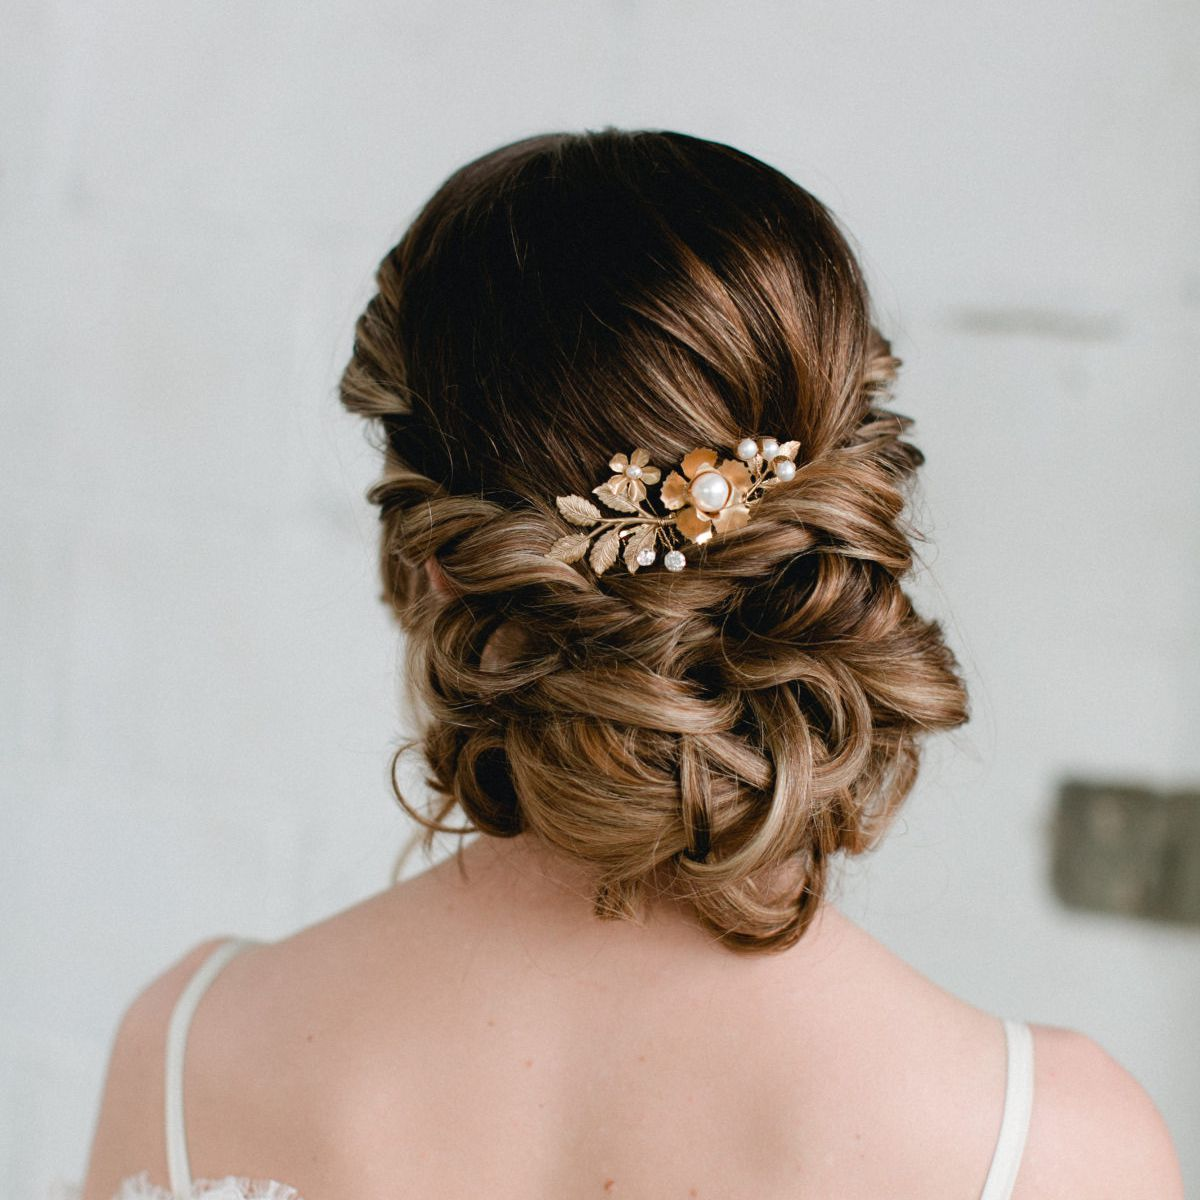 12 Wedding Hairstyles for Brides with Long Hair